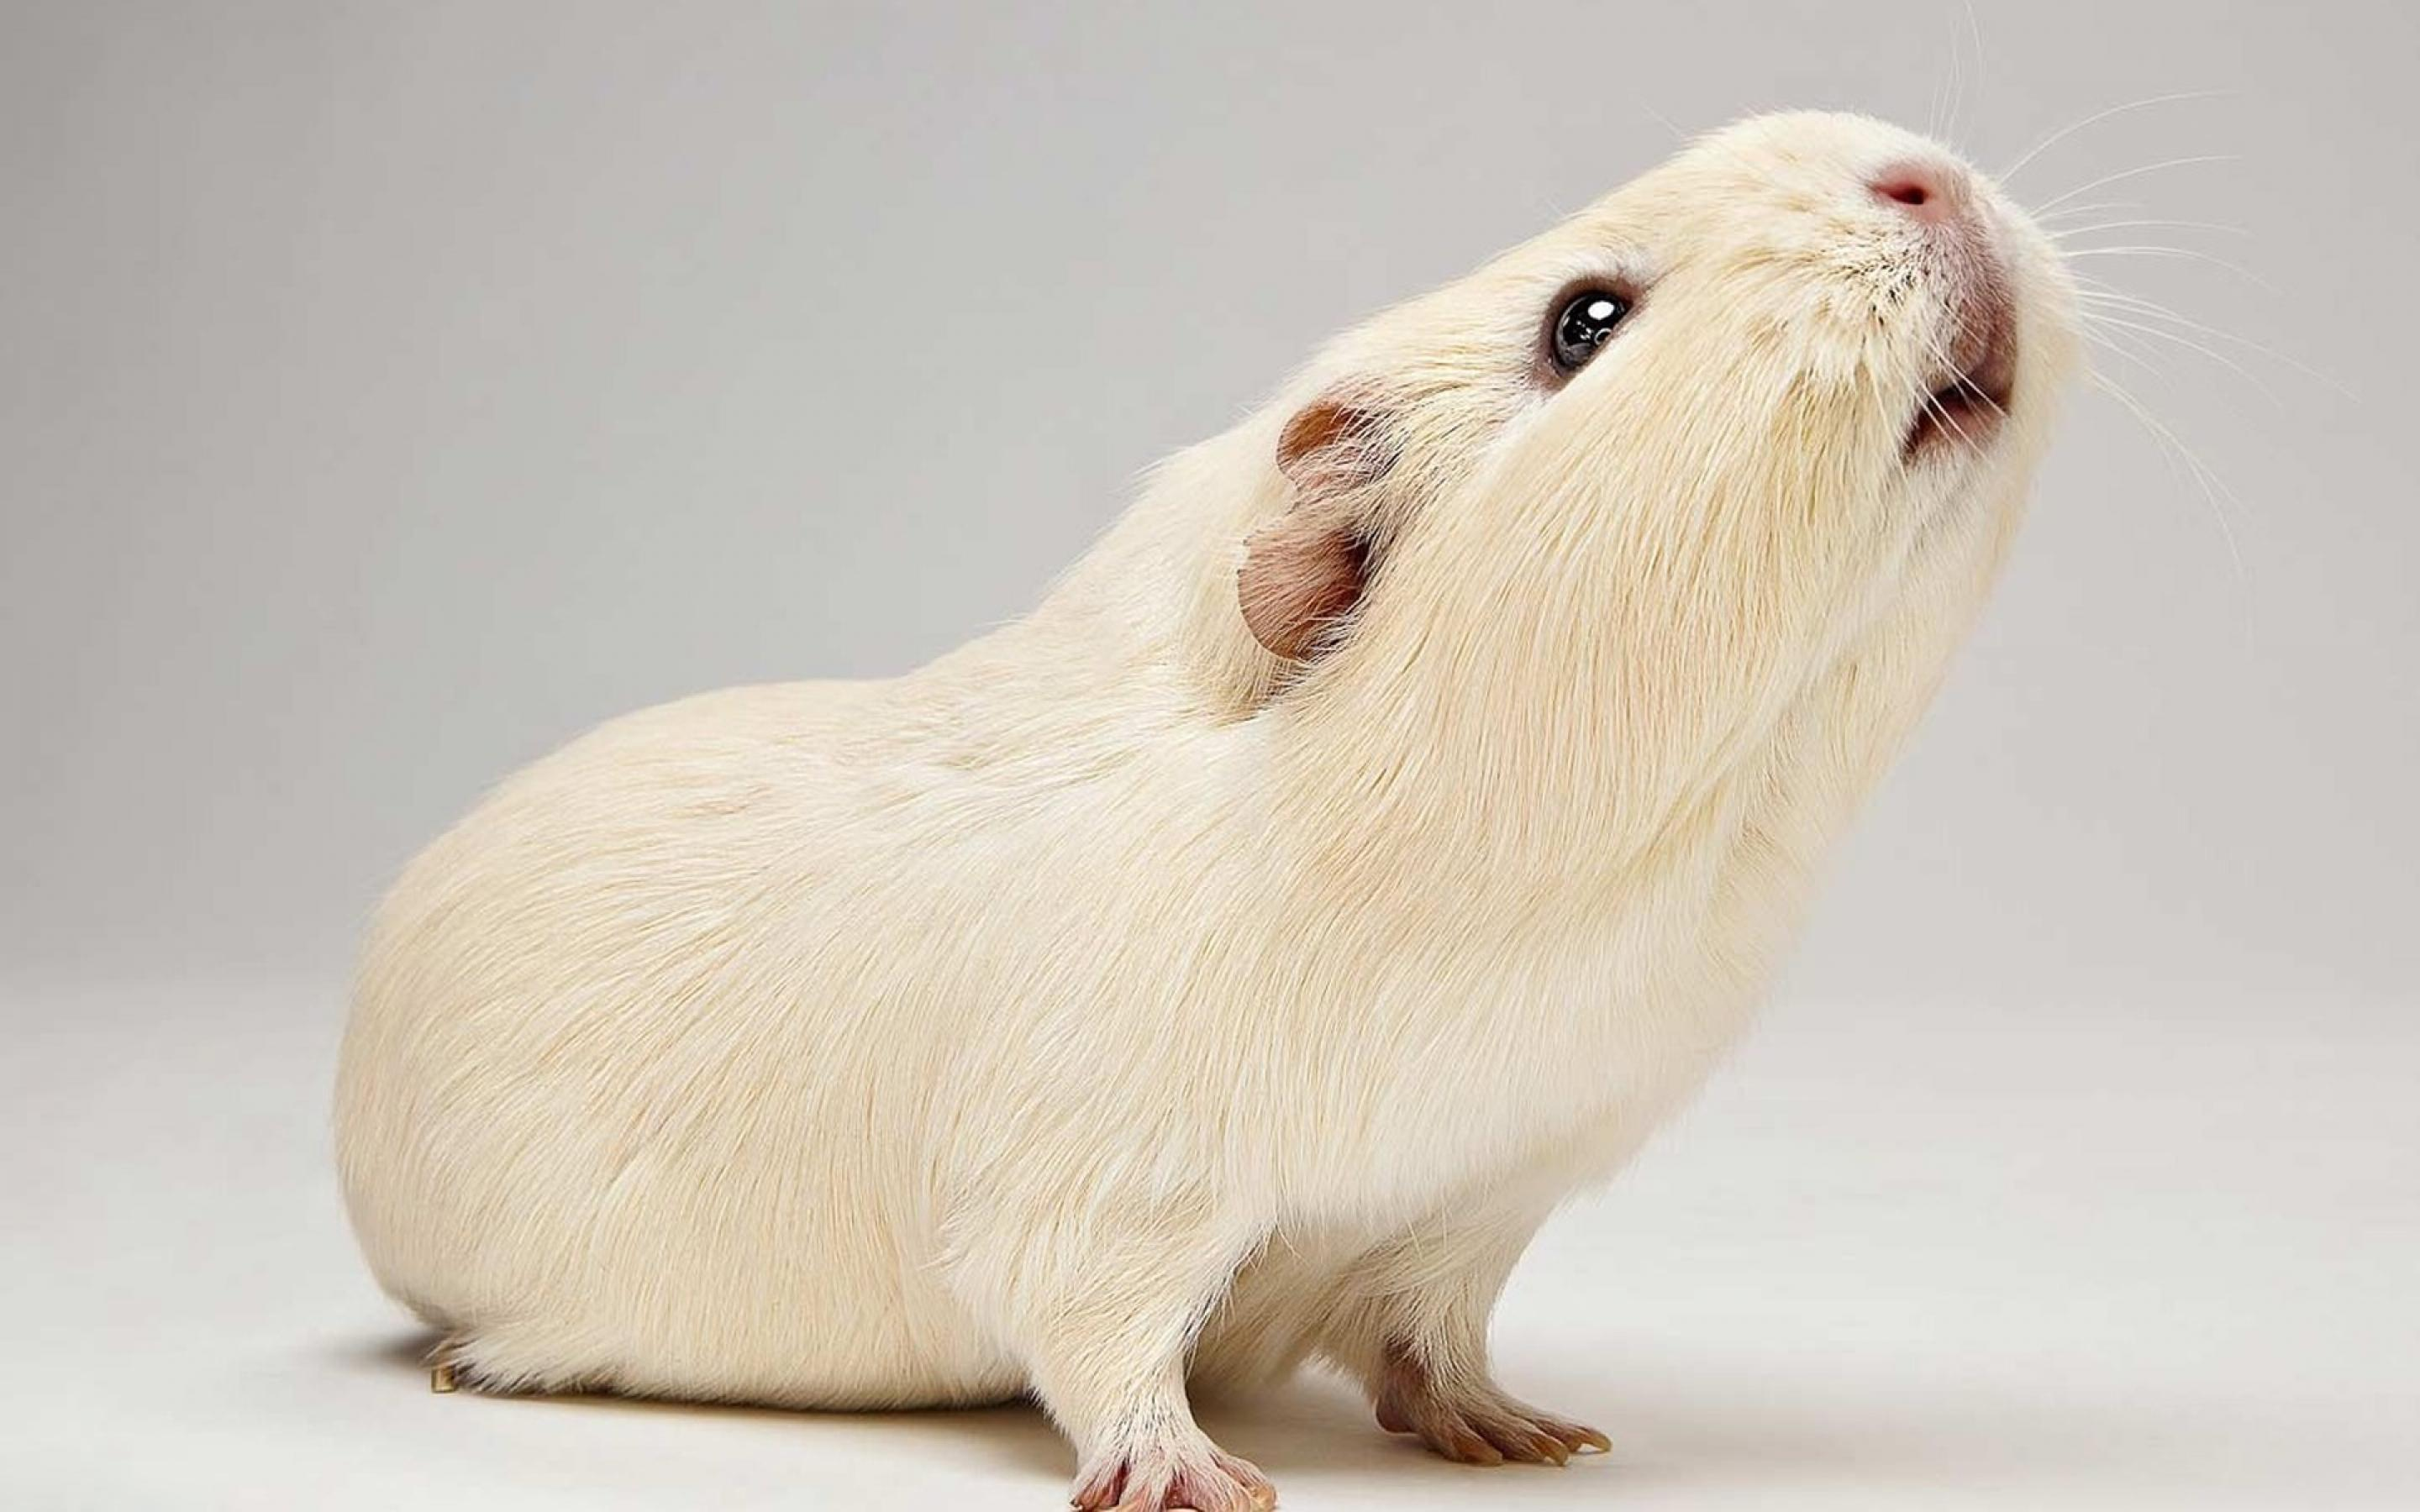 White guinea pig wallpapers and images   wallpapers pictures photos 2880x1800